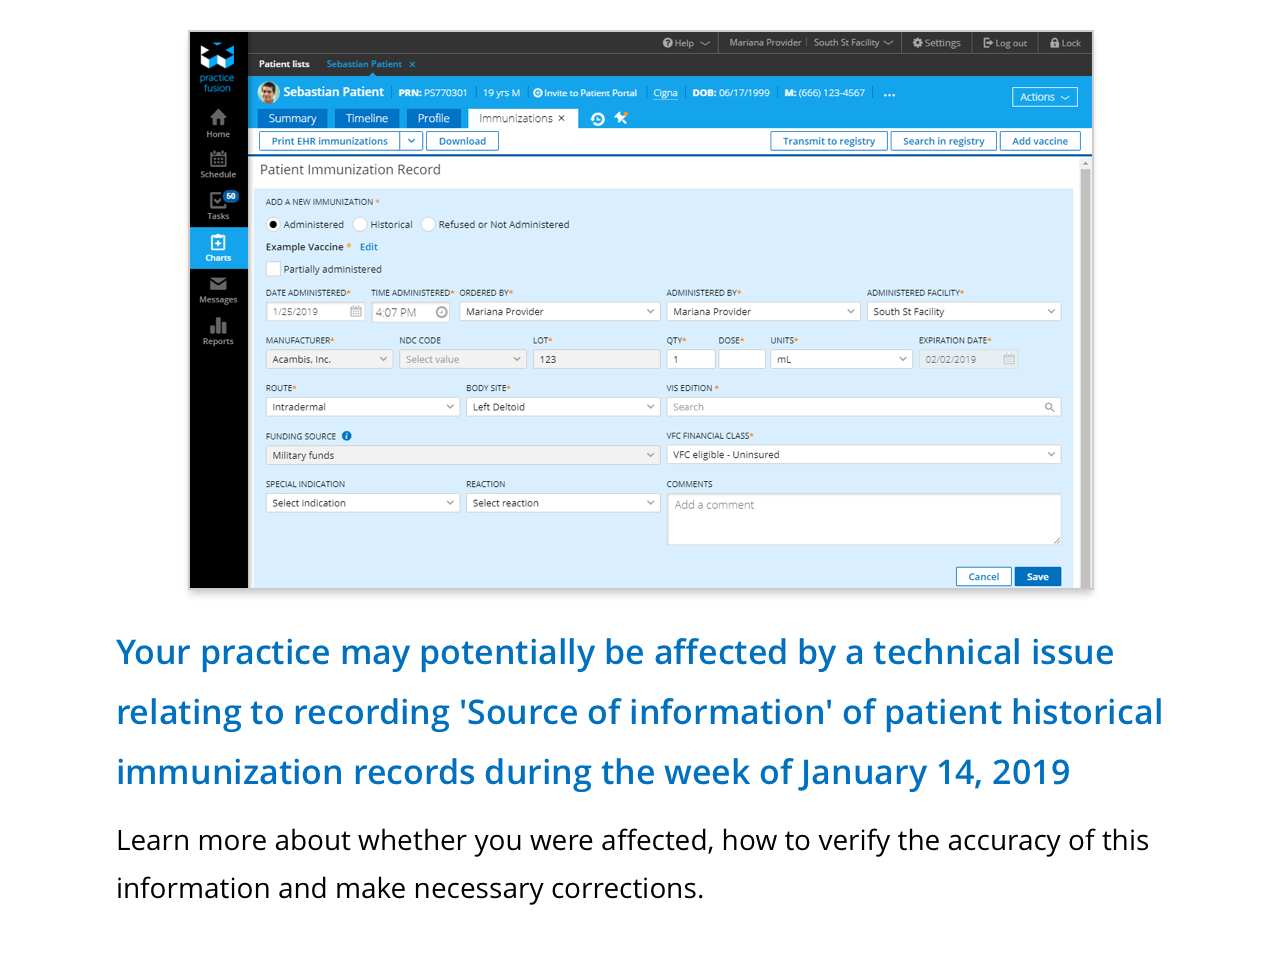 Your practice may potentially be affected by a technical isue relating to recording 'Source of information' of patient histroical immunization records during the week of January 14, 2019